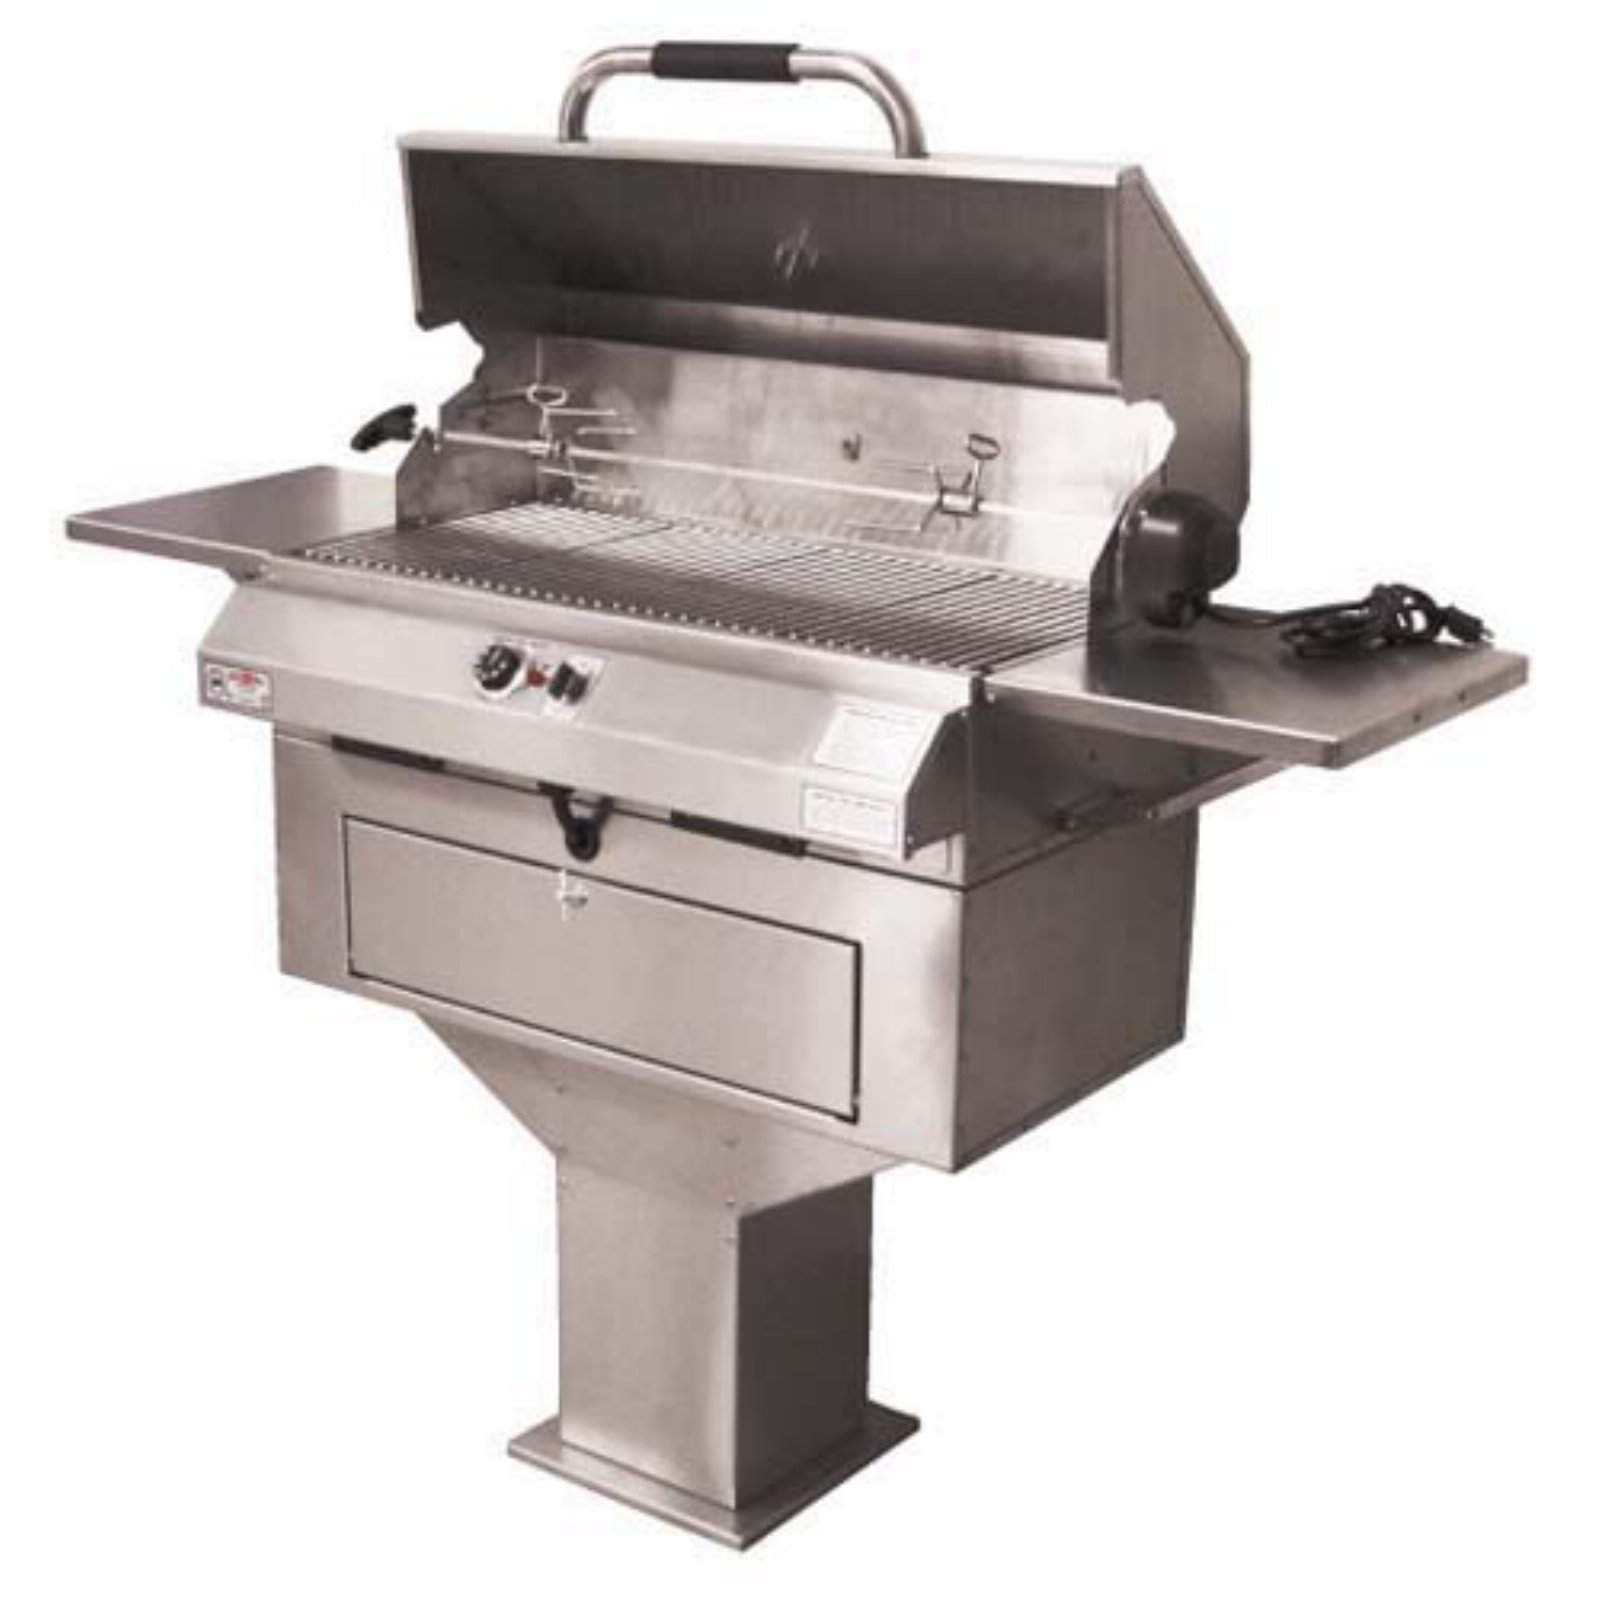 Electri-Chef Electric Grill - Single Burner